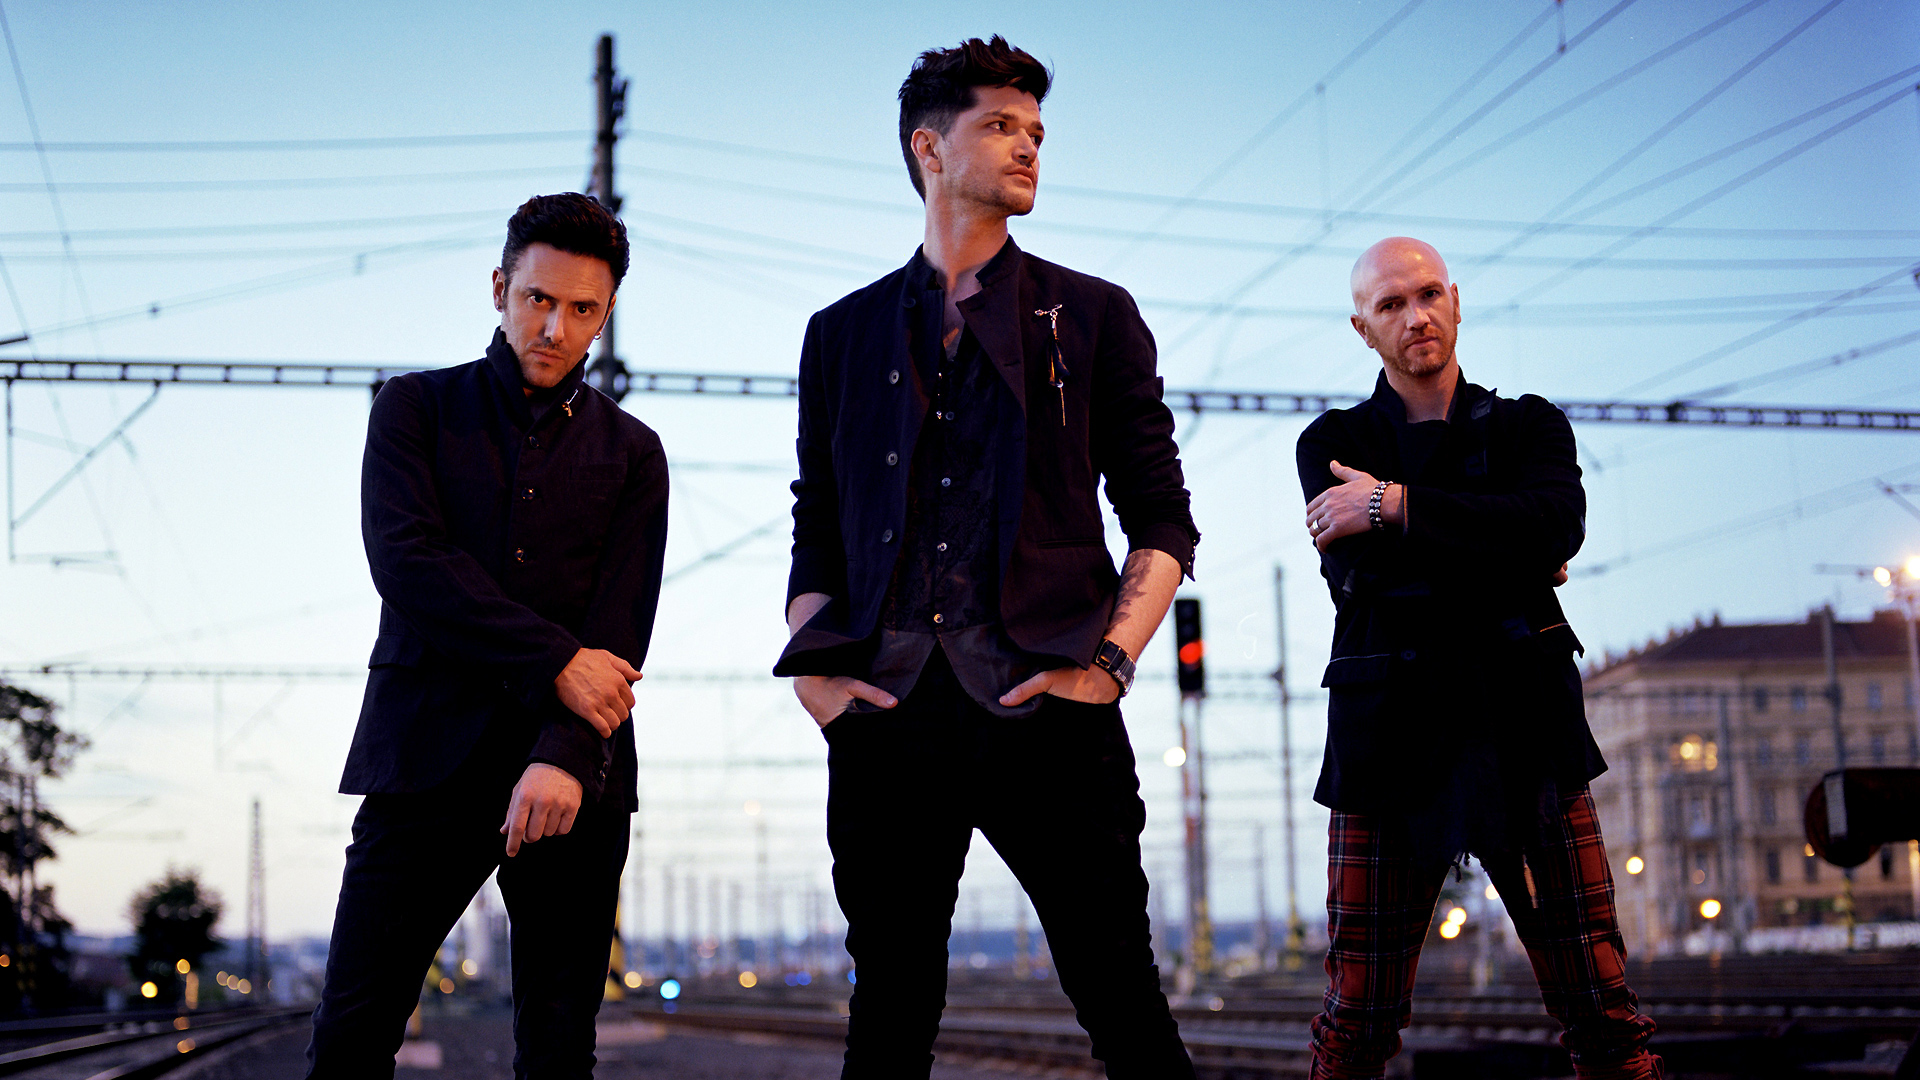 The script home 2